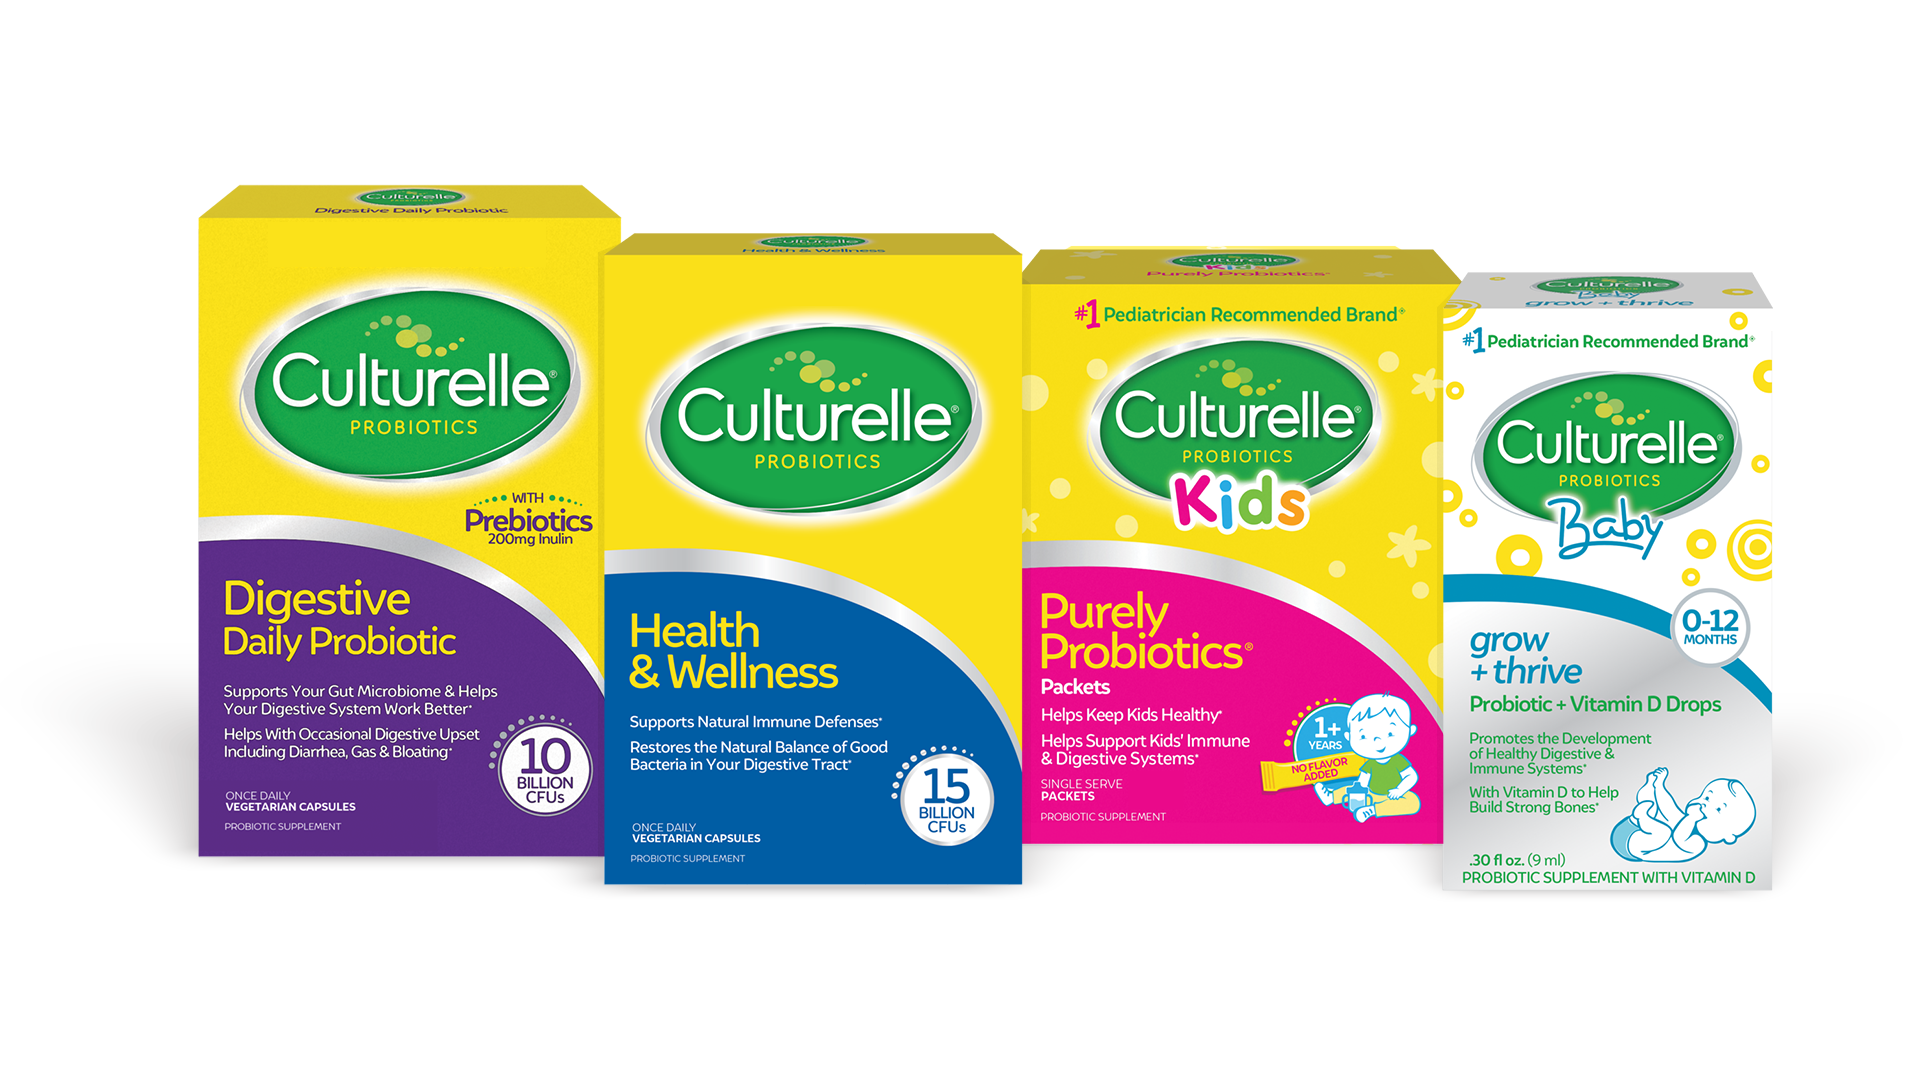 Culturelle Probiotic Products